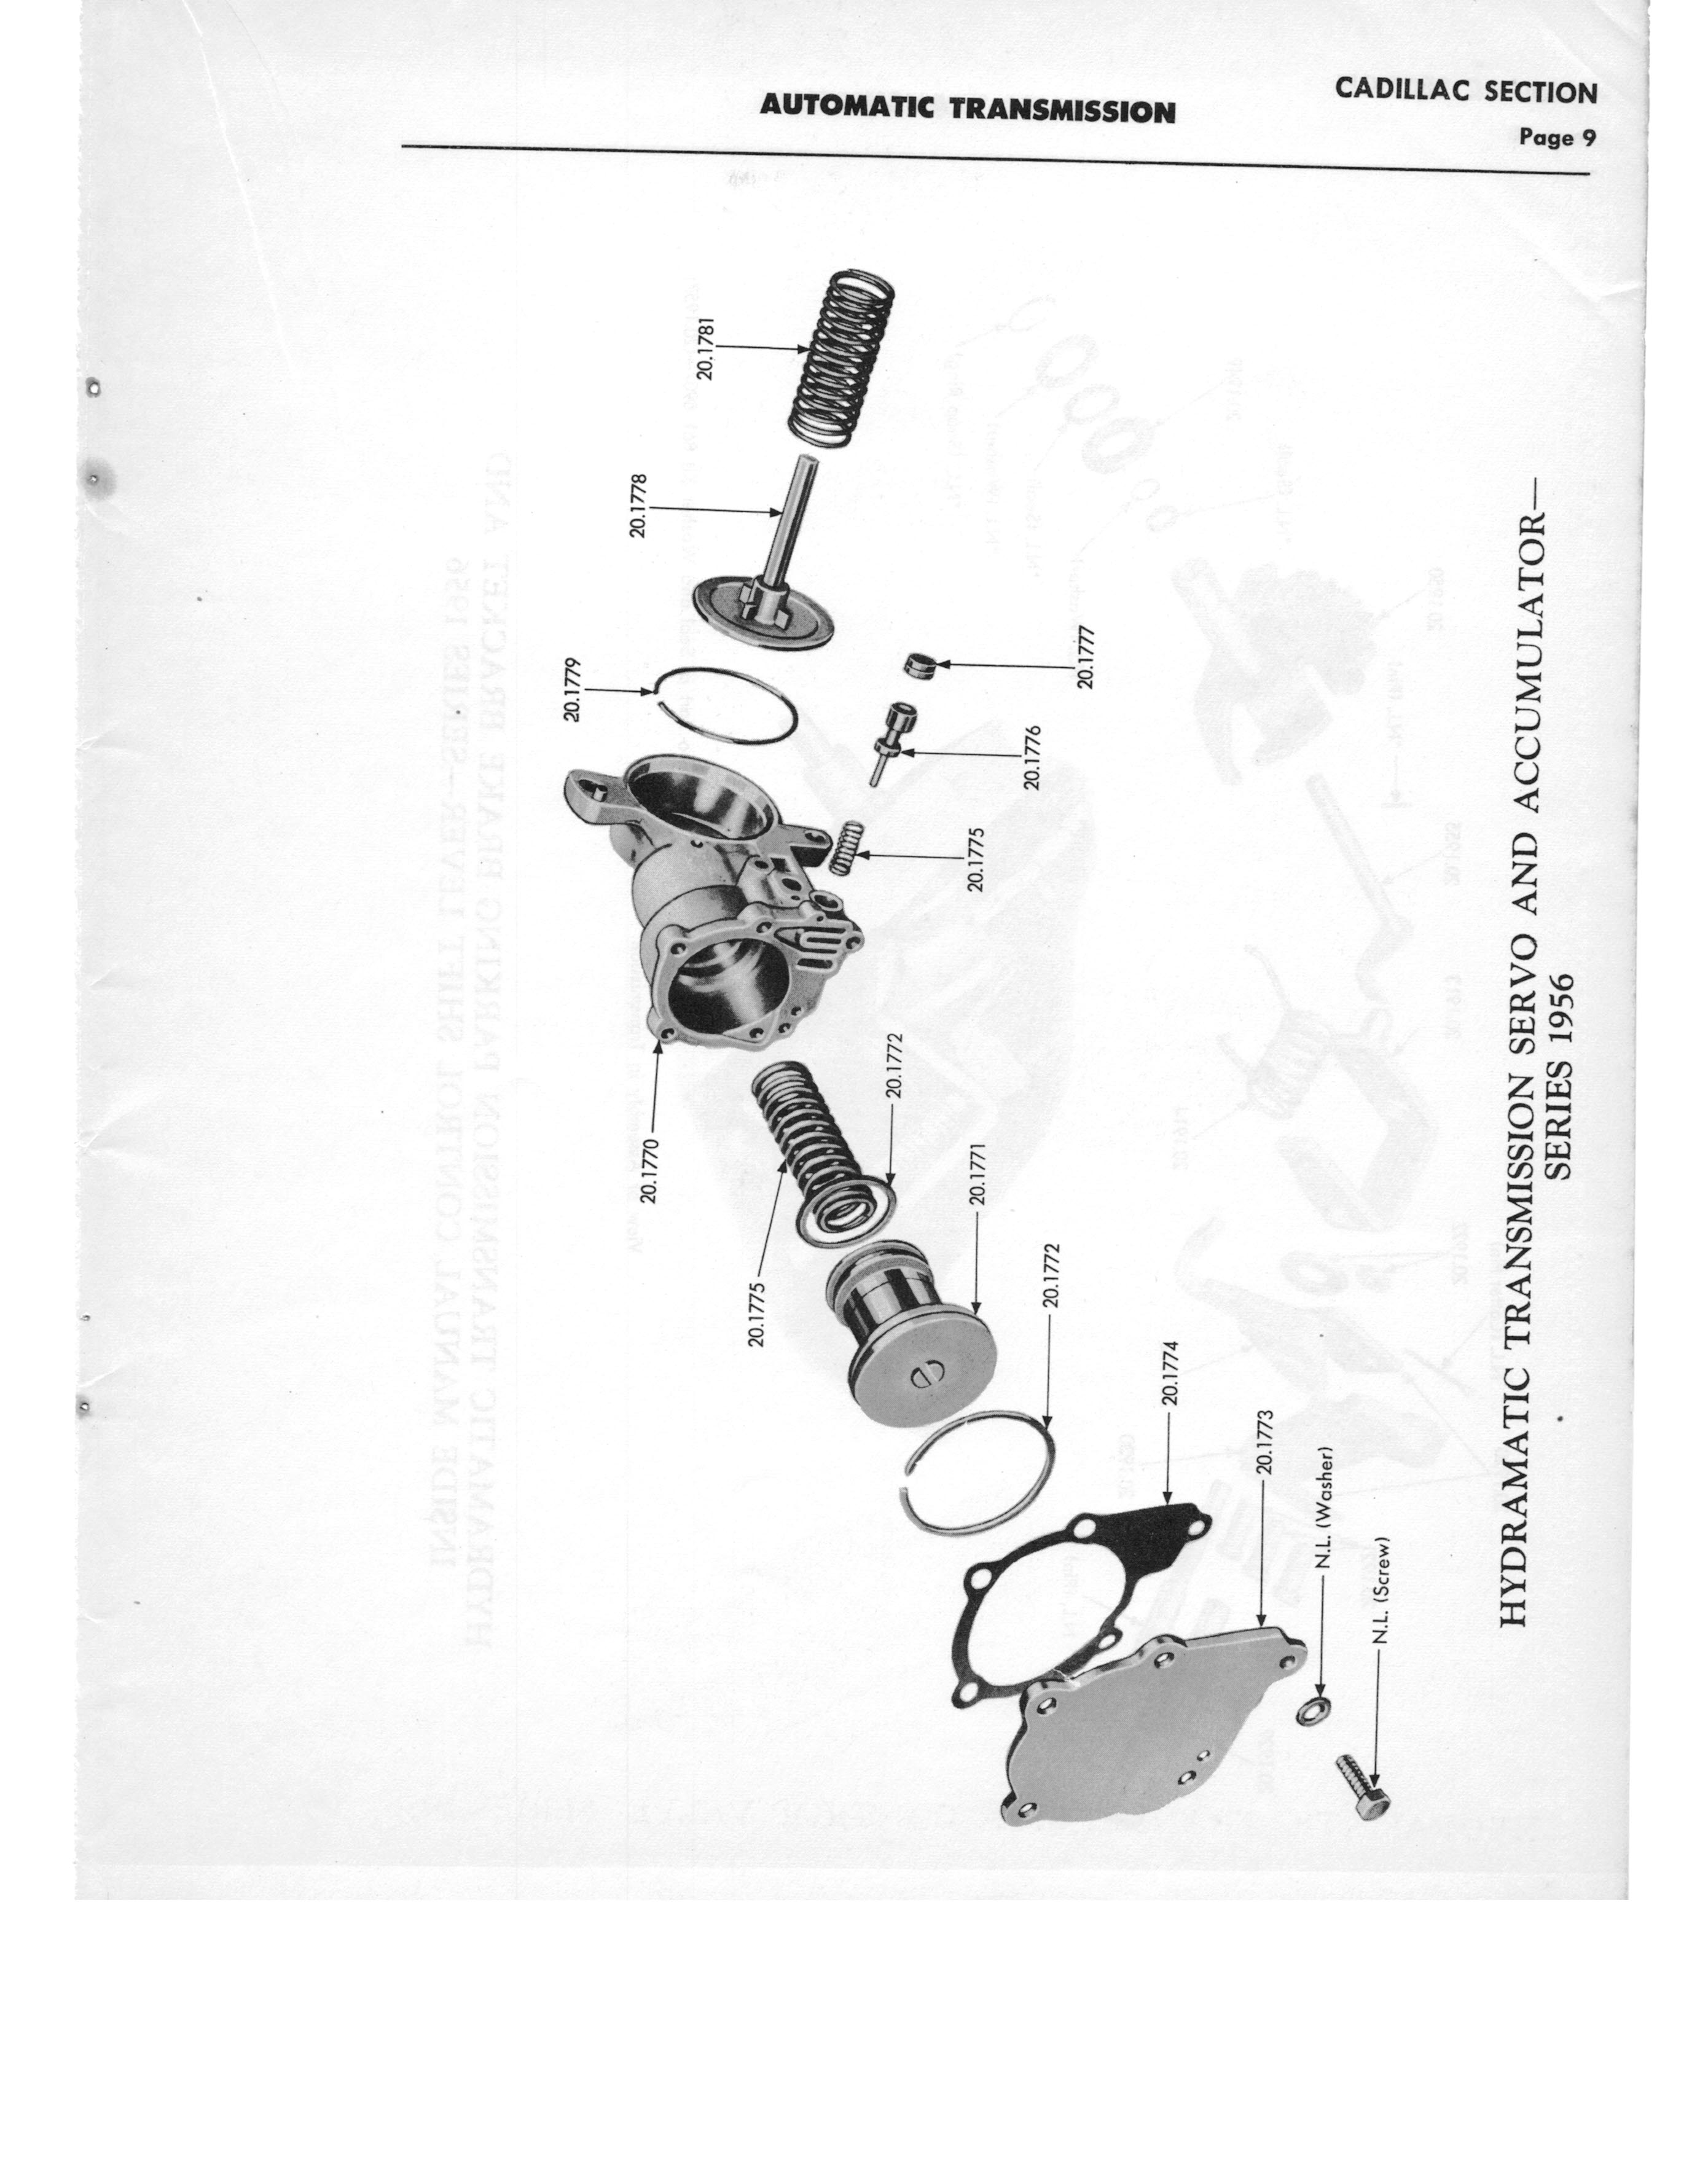 Gm Automatic Transmission Parts Catalog Supplement To A Page 15 Of 97